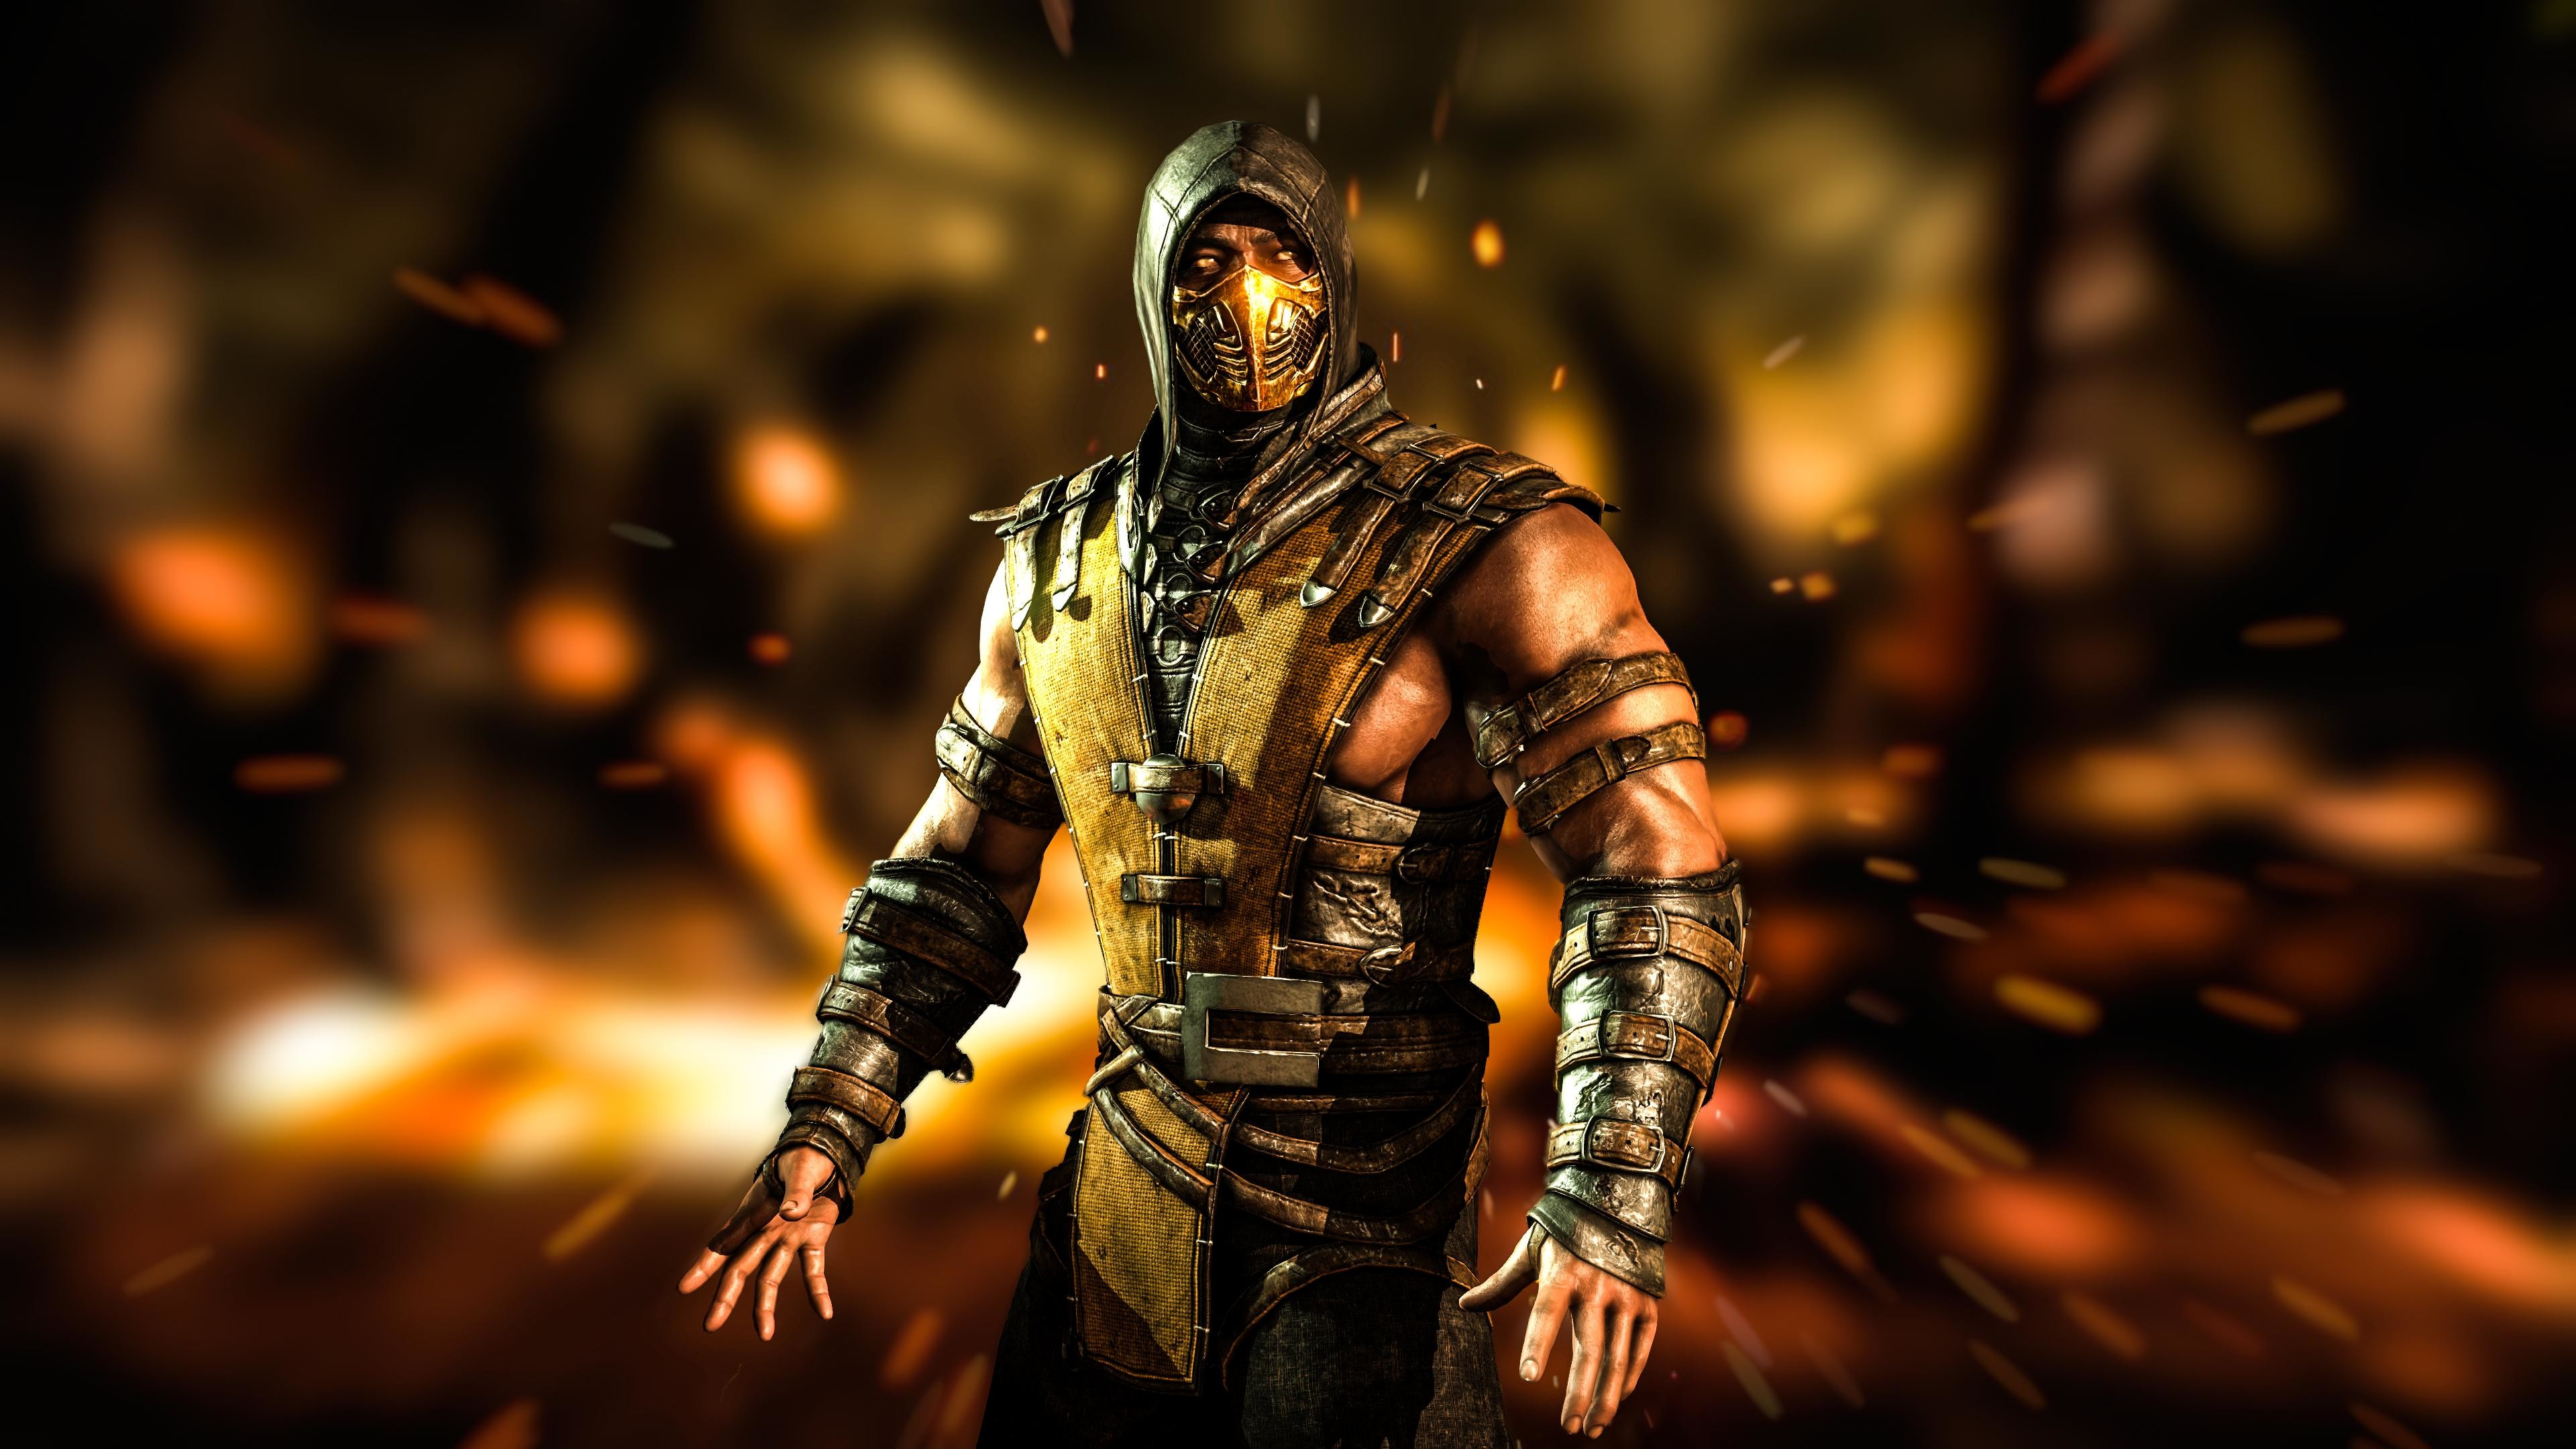 Mortal Kombat Wallpapers Scorpion 65 Images